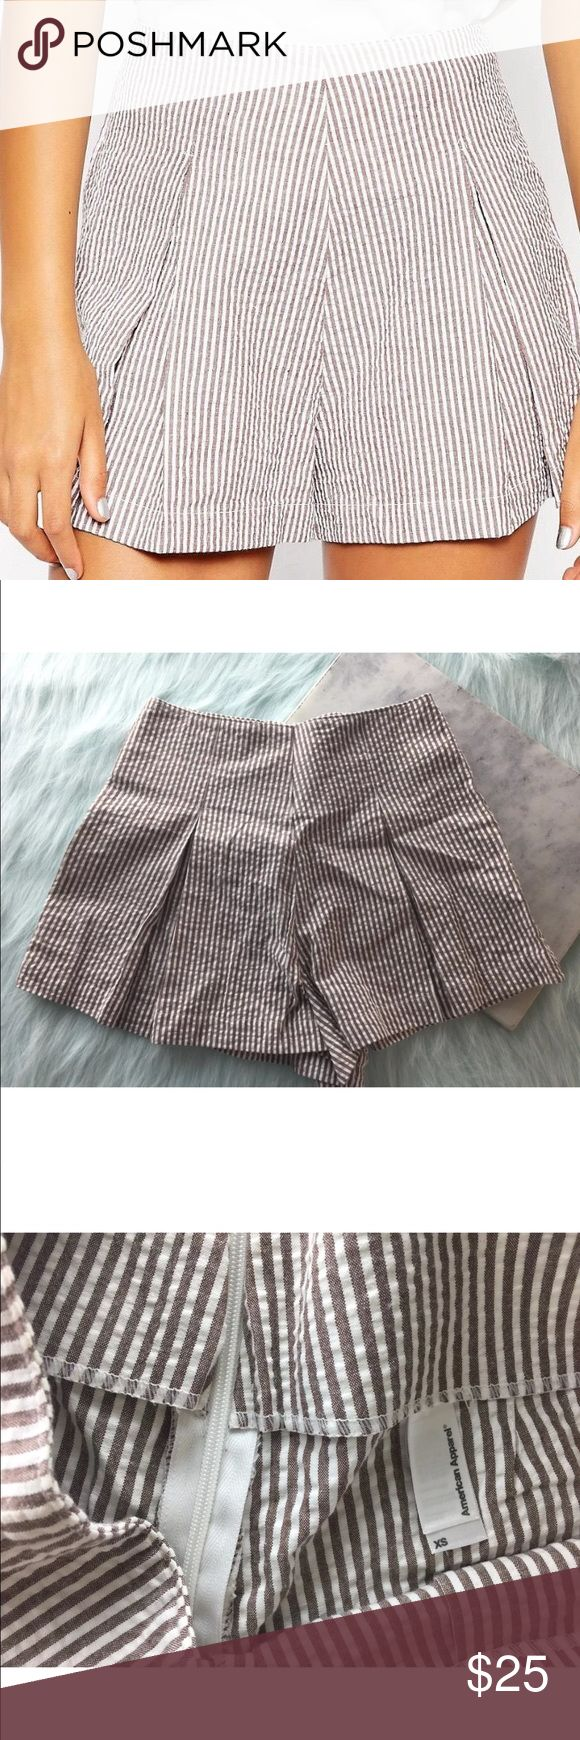 "American Apparel Seersucker Hampton Pleated Shorts American Apparel White Brown Seersucker Hampton High Waist Pleated Shorts Condition: Excellent; like-new; no flaws  Approximate measurements taken flat: Waist: 12.5"" Rise: 14"" Inseam: 2"" American Apparel Shorts"